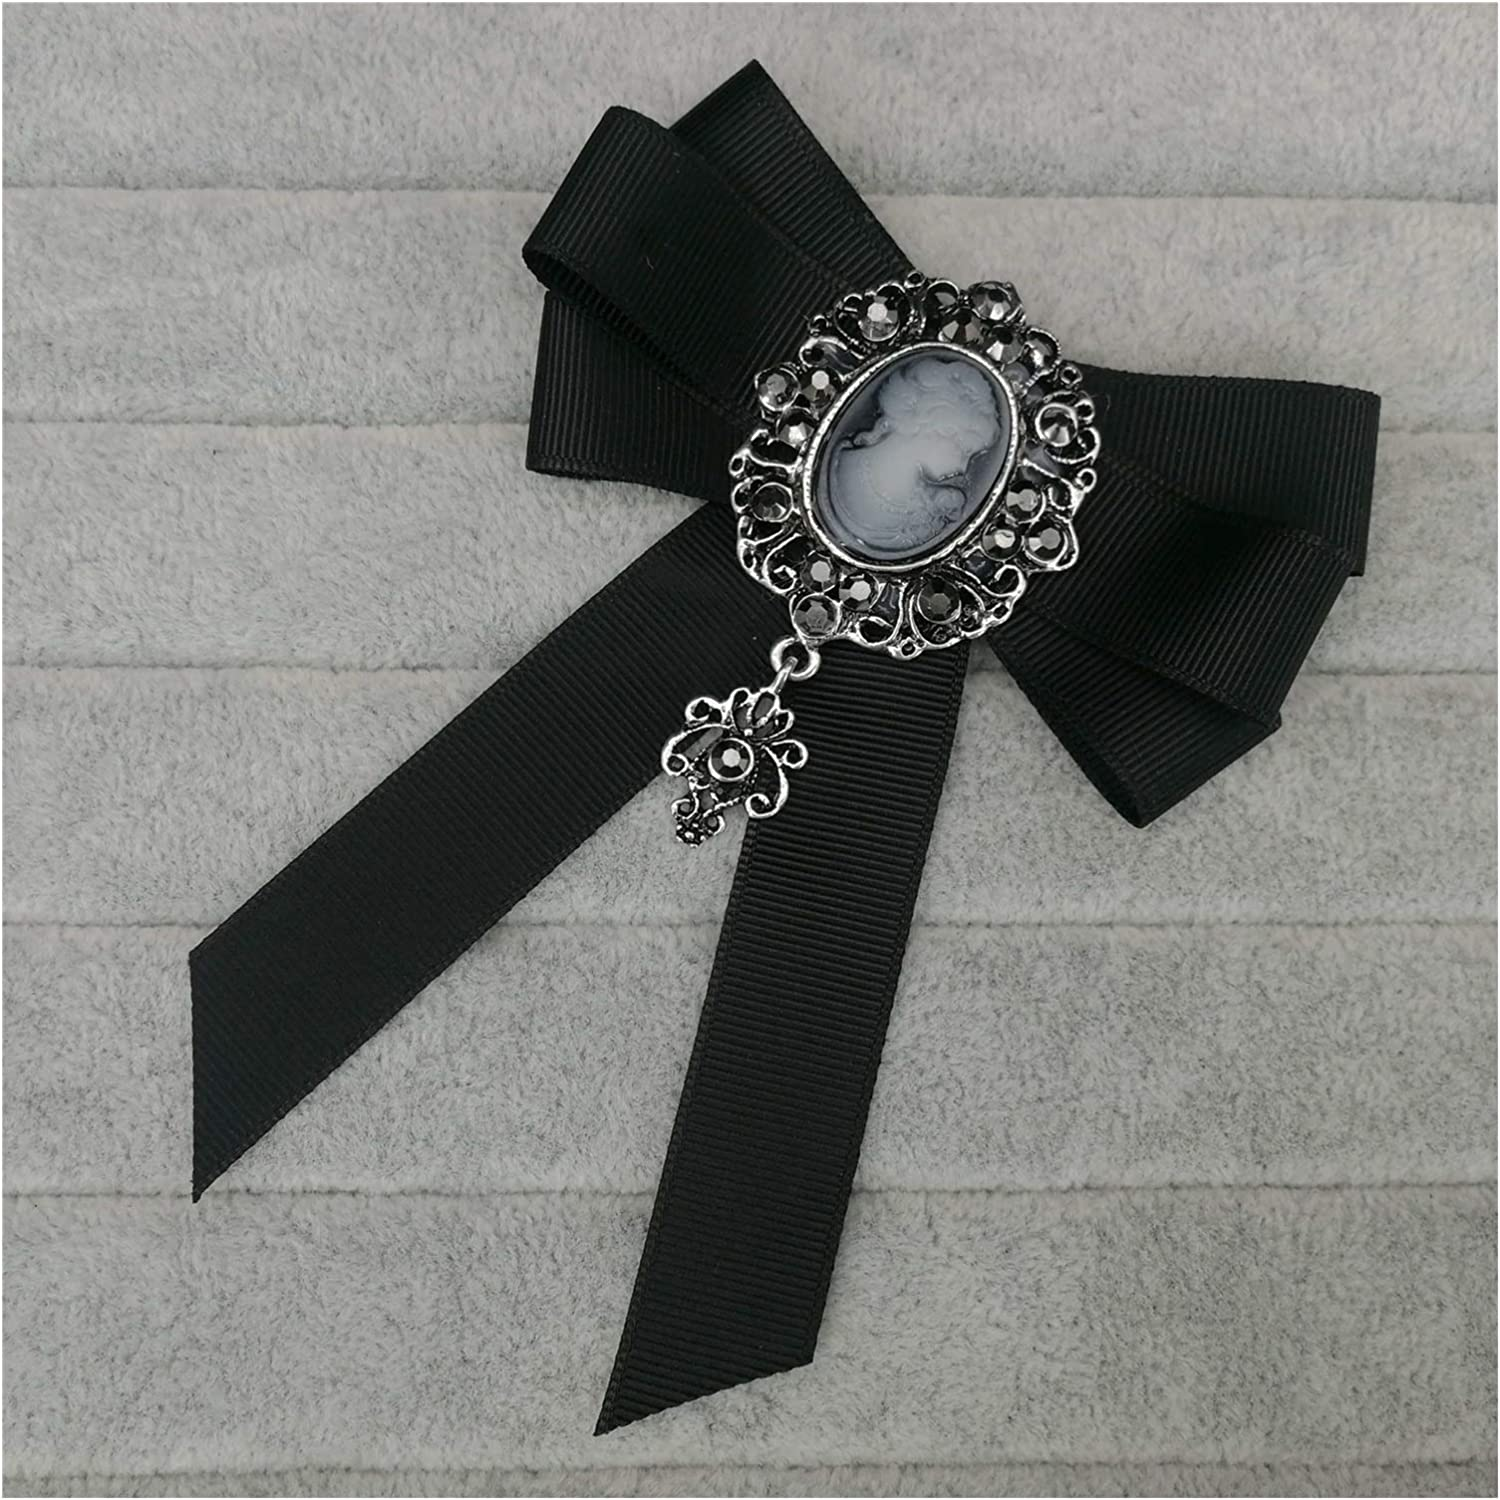 JSJJAED Brooch Fashion Fabric Band Bowknot Limited time Ranking TOP13 sale for Women Vi Brooches